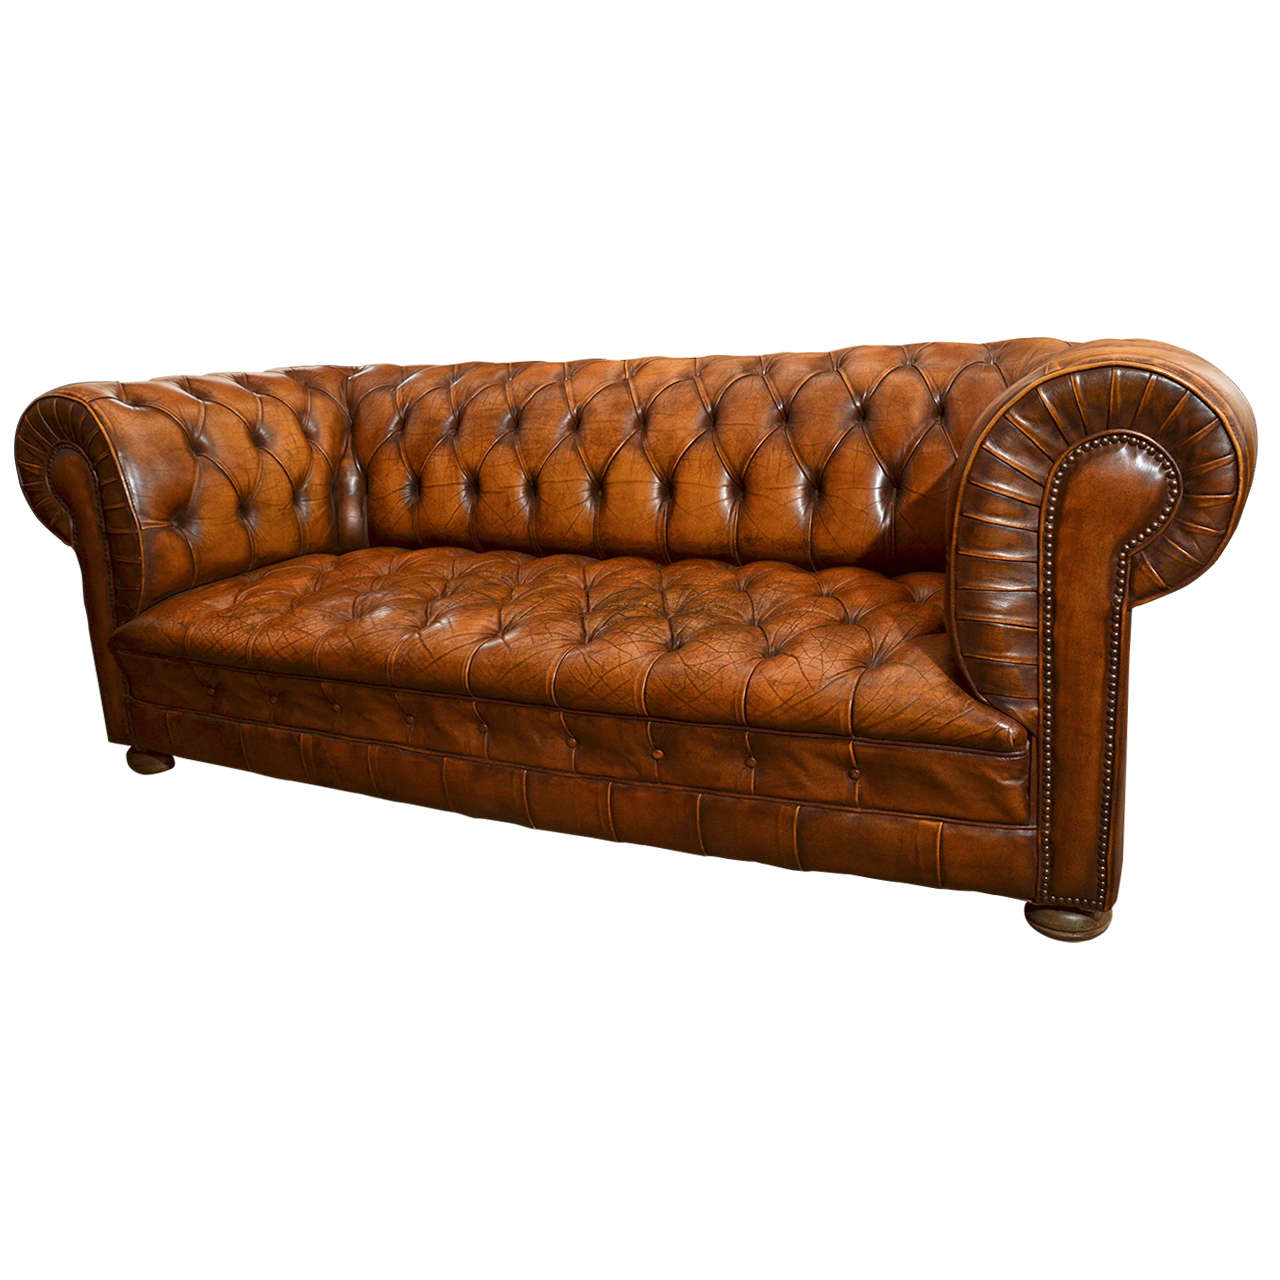 1970s French Leather Chesterfield Sofa For Sale At 1stdibs